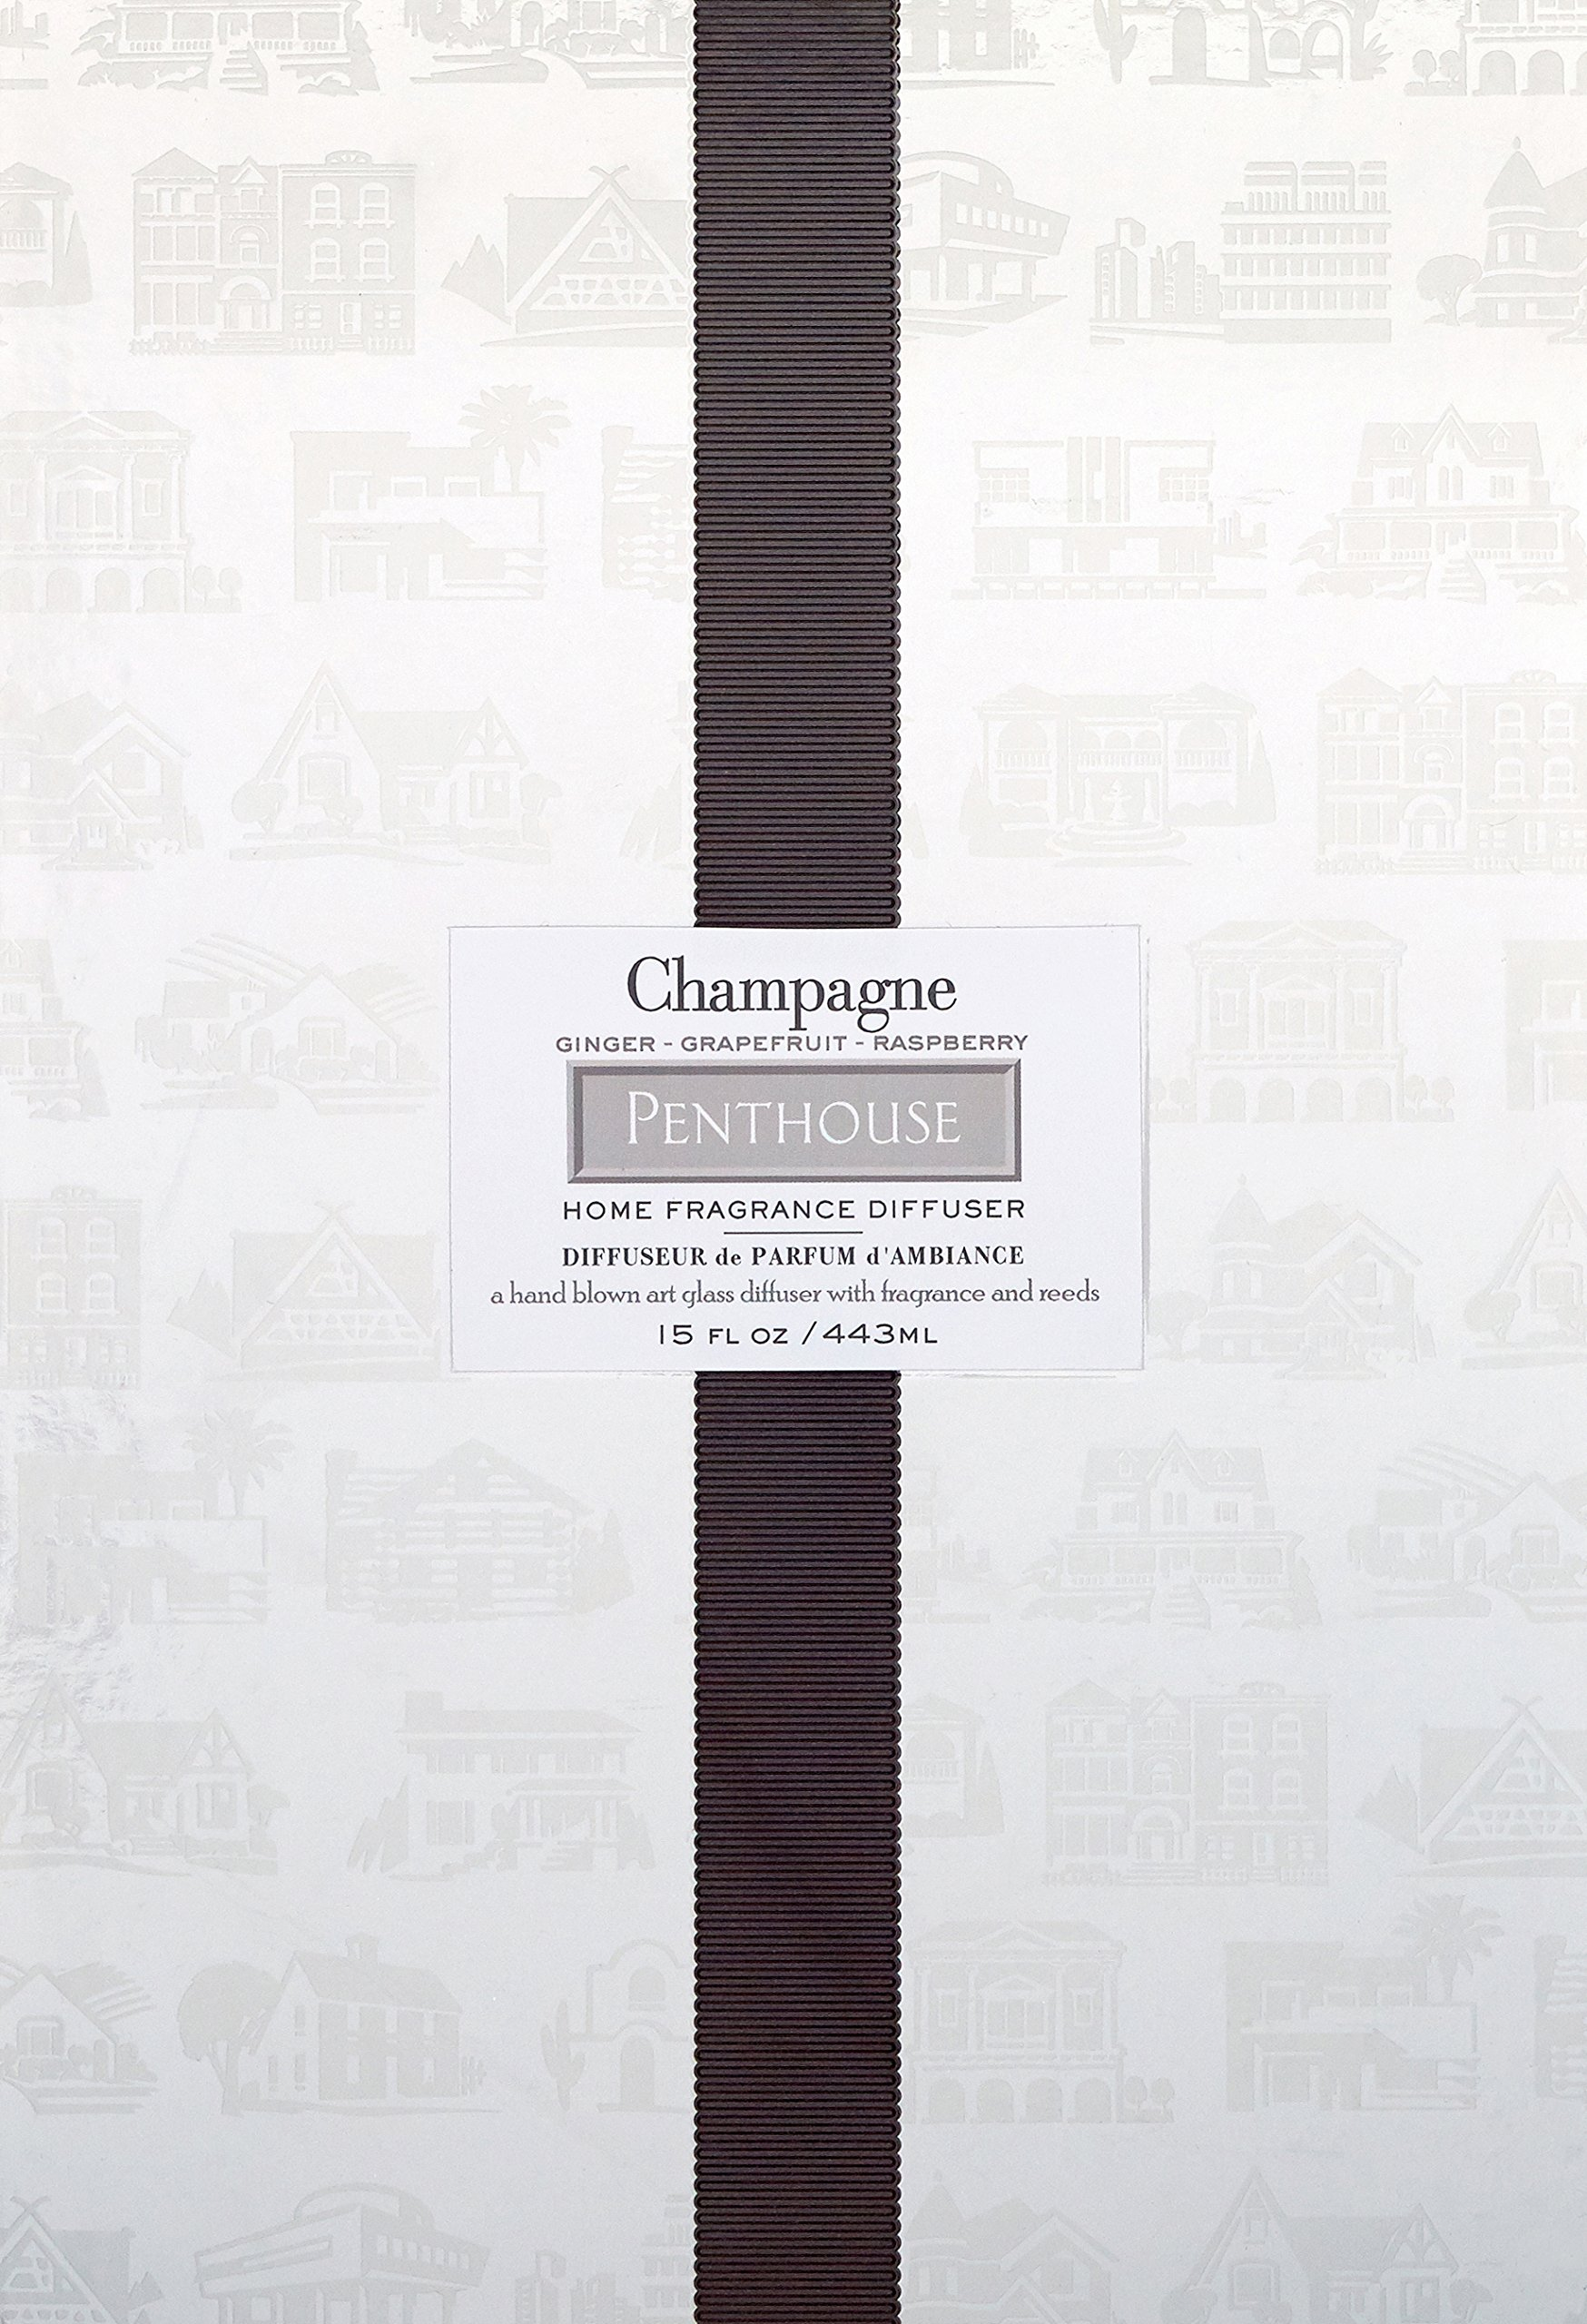 LAFCO House & Home Diffuser, Penthouse Champagne, 15 Fl Oz by LAFCO (Image #3)